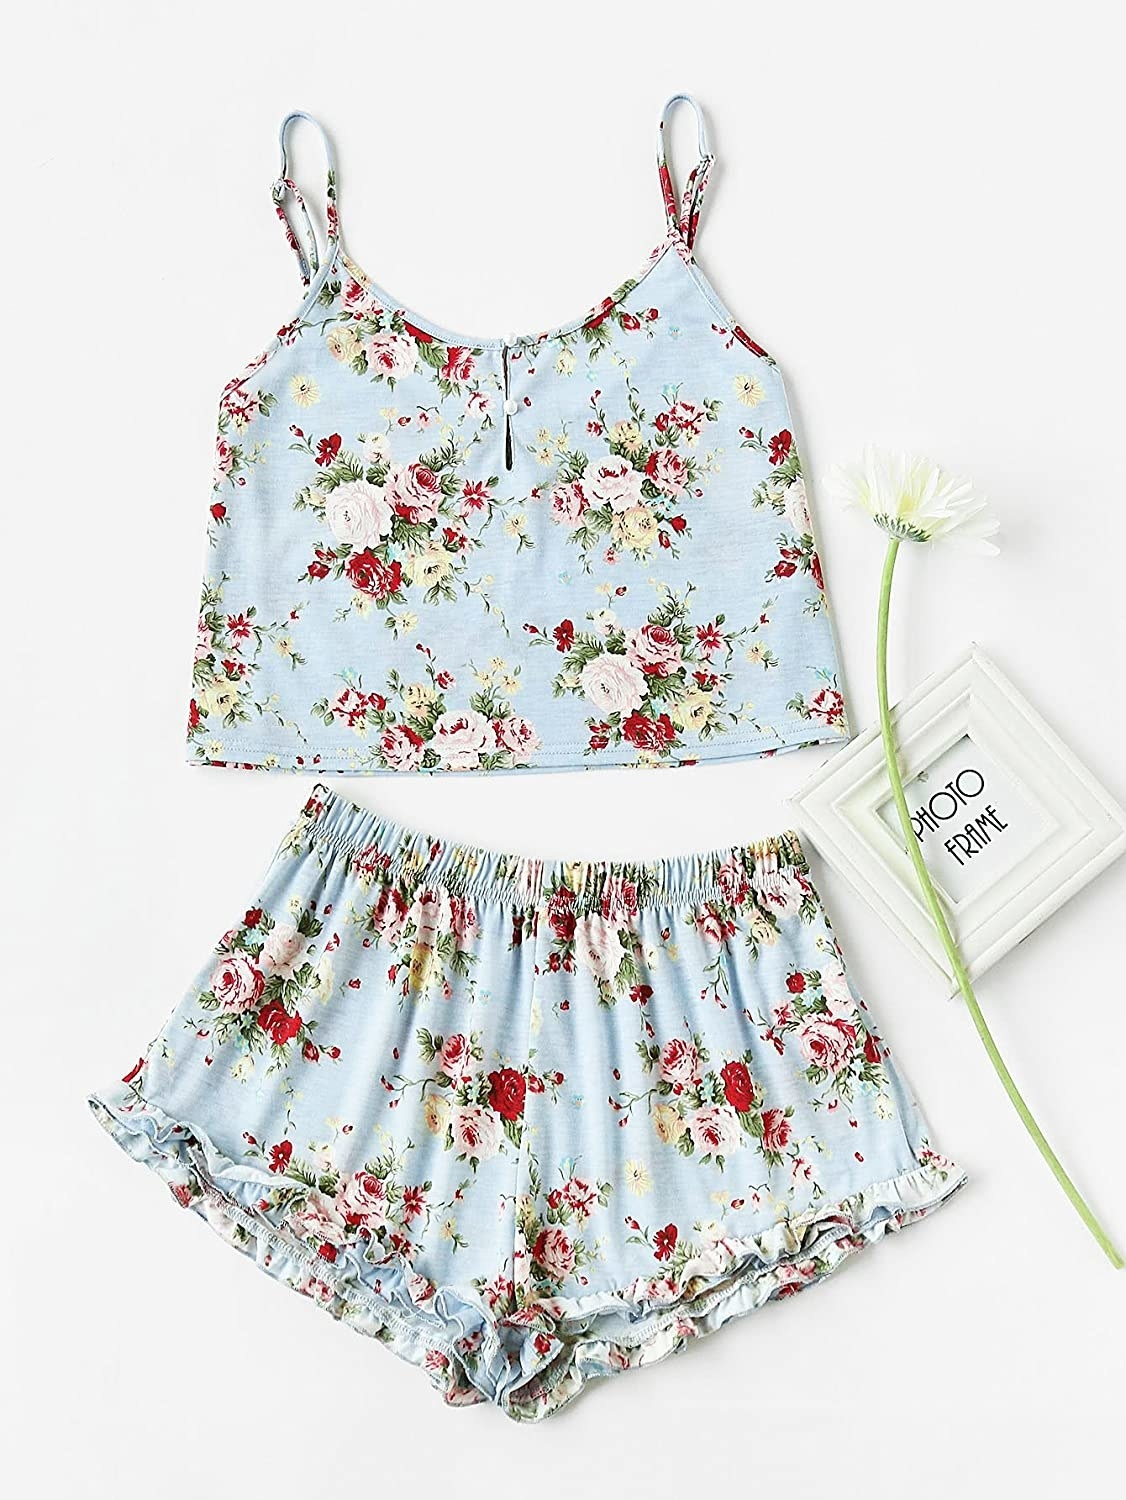 A pair of frilled short and a short cami